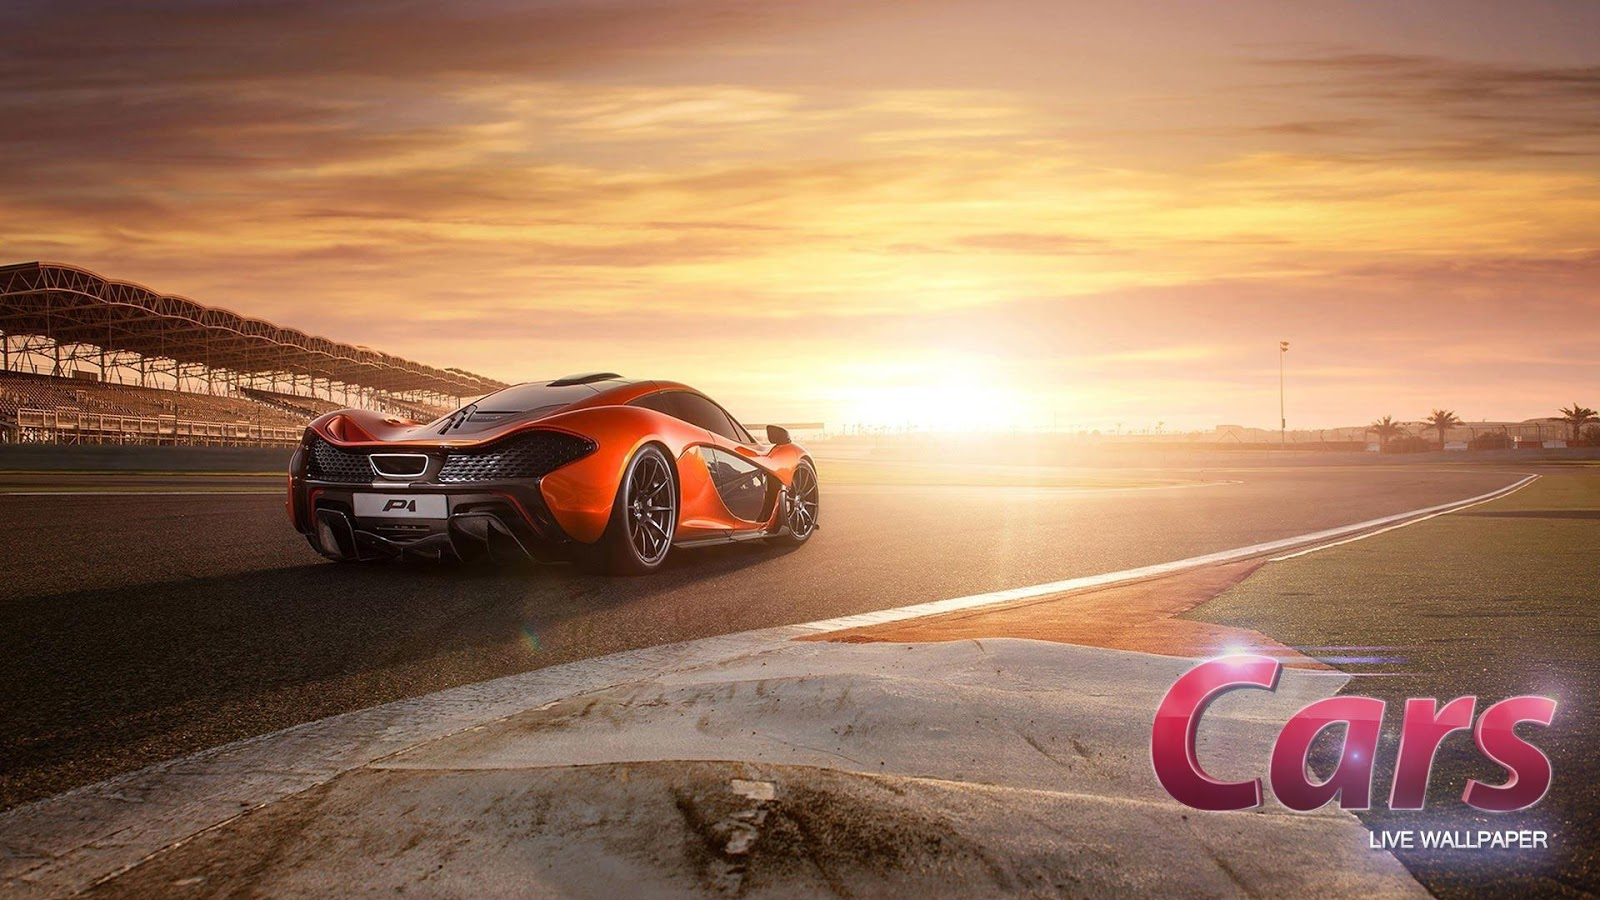 Cars Live Wallpaper Android Apps On Google Play